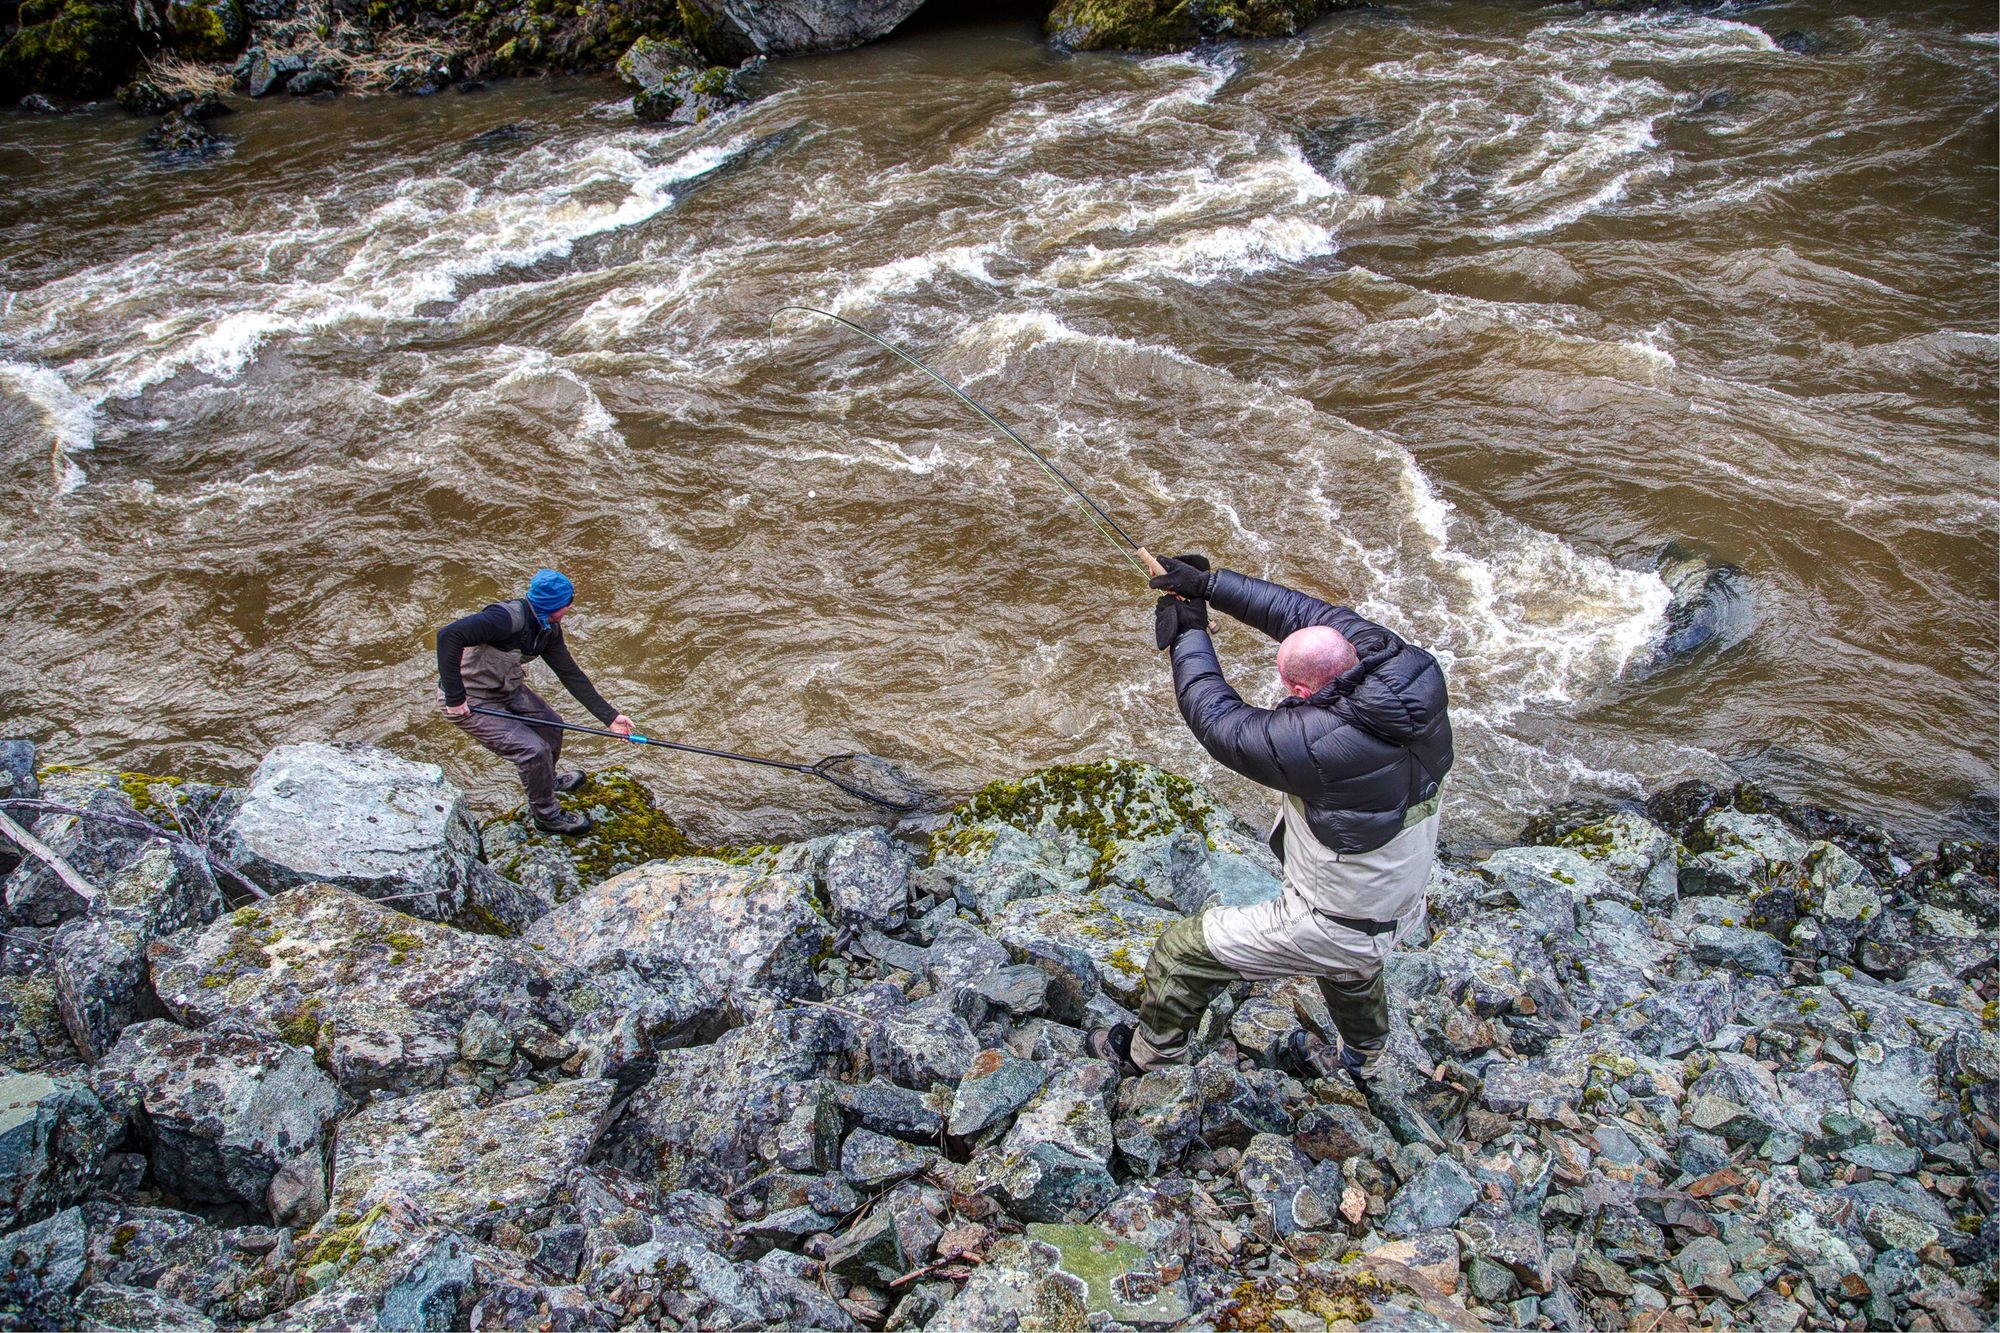 Some fish just can't be landed by your lonesome. This great action shot by Justin Hamblin shows angler brothers Pete and Ben work together to land a big B Run Steelhead in raging, off-colored water.